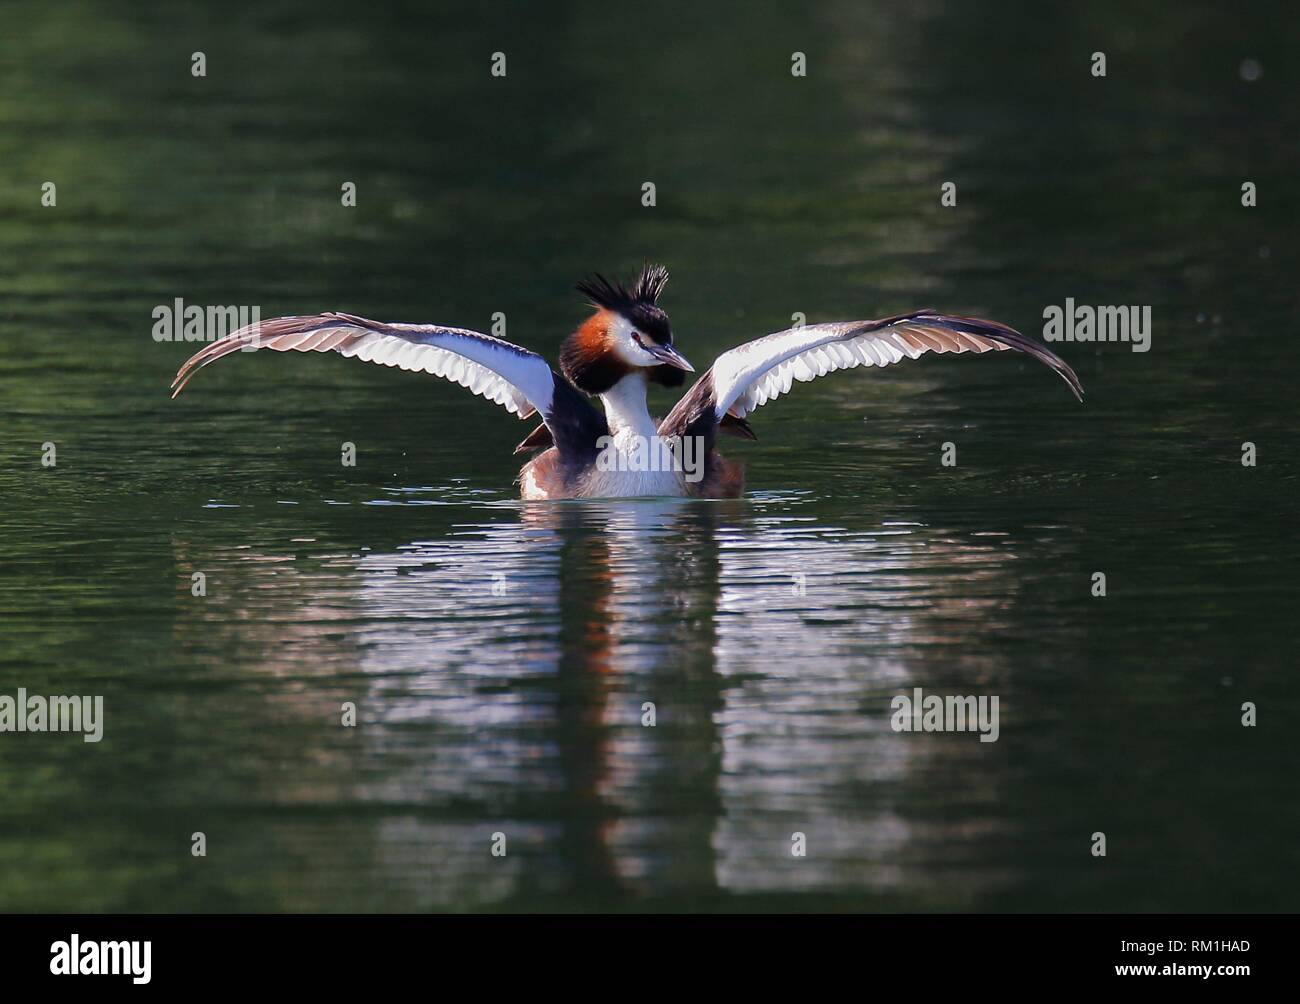 Great Crested Grebe (Podiceps cristatus), Vastervik, Smaland, Sweden - Stock Image